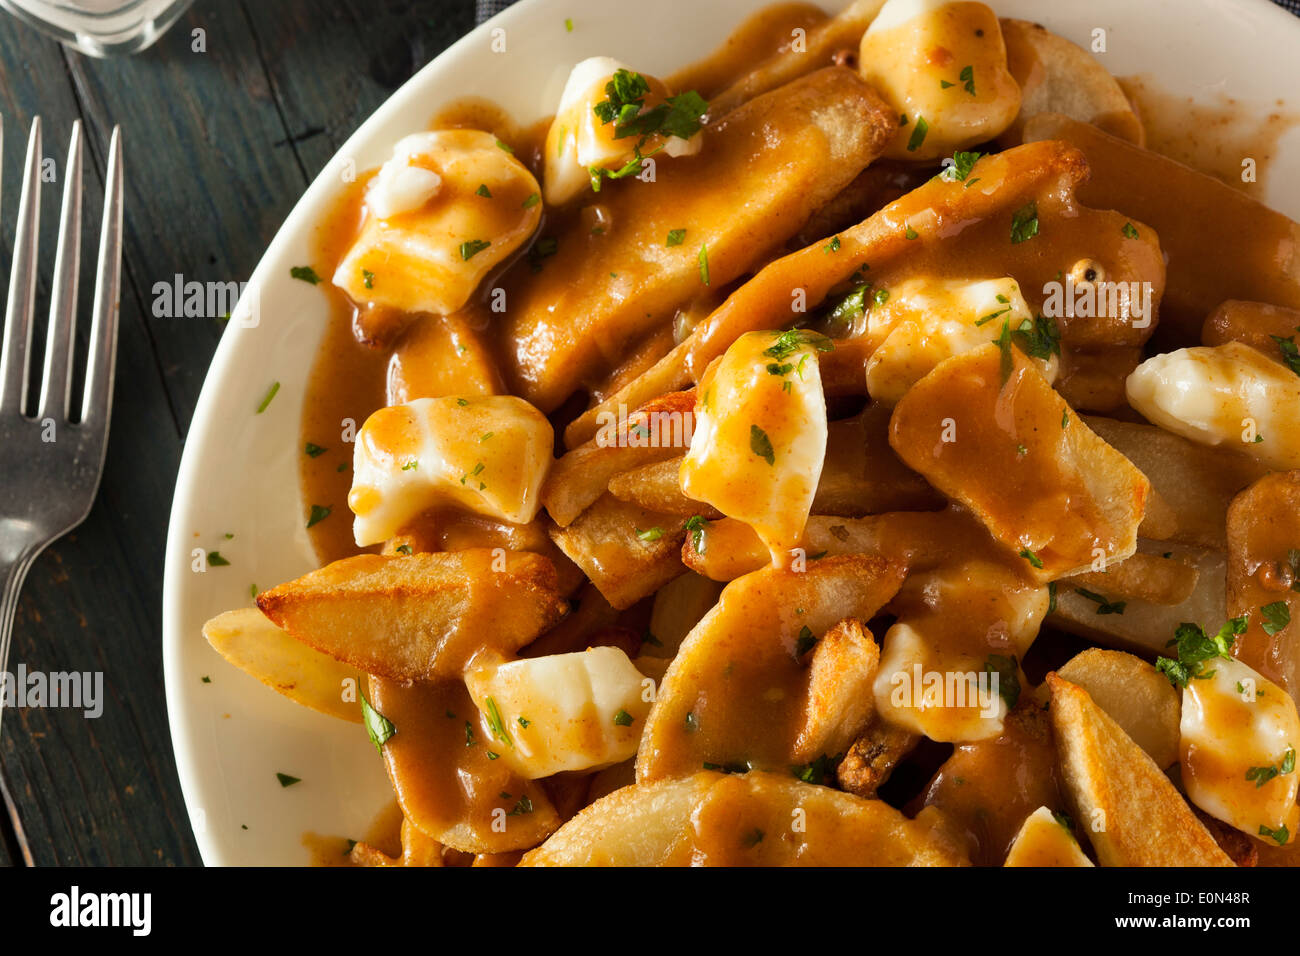 Unhealthy Delicious Poutine with French Fries and Gravy - Stock Image